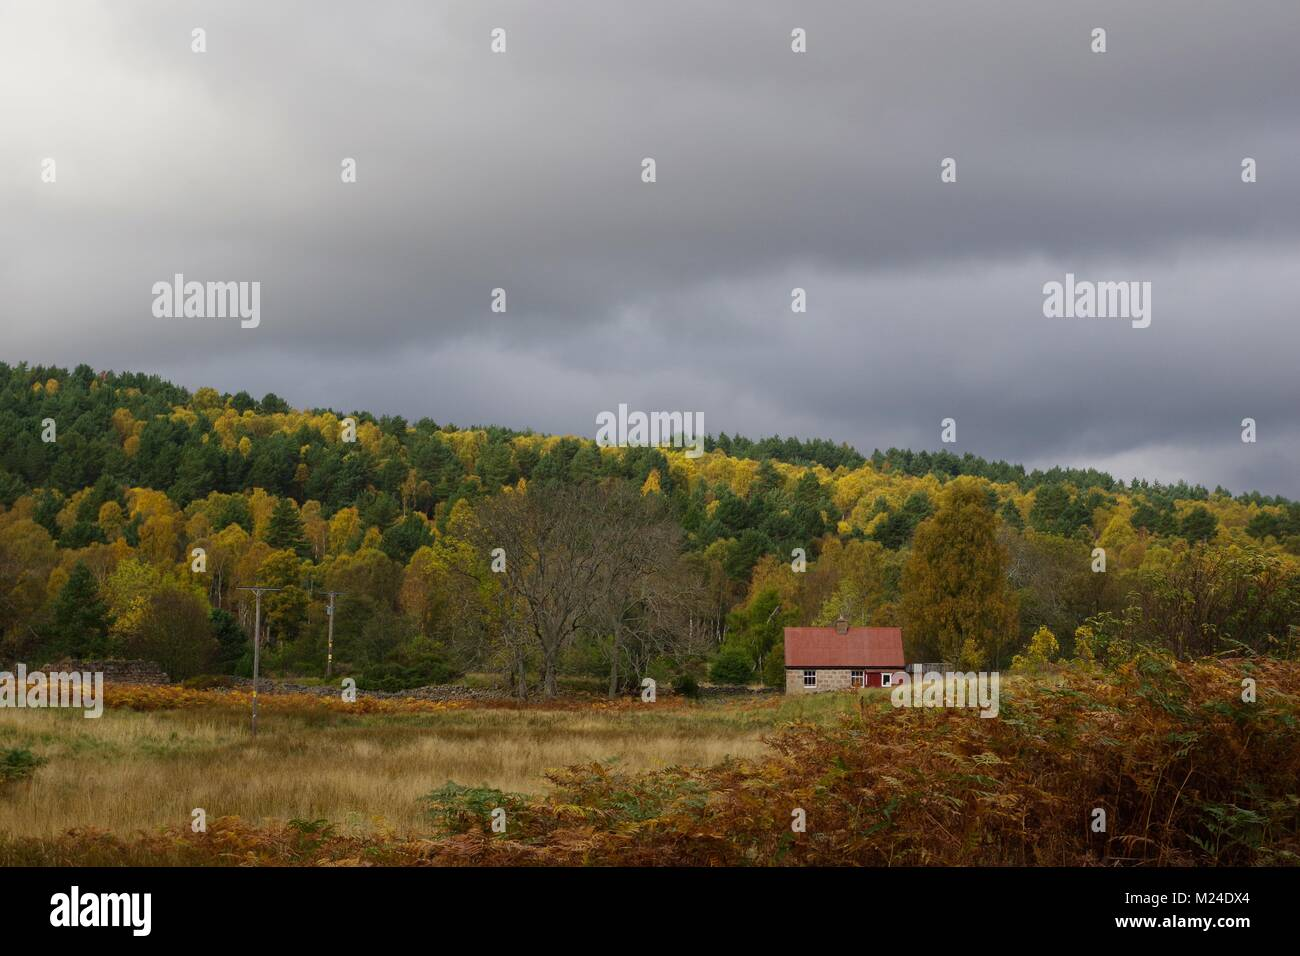 Holiday Cottage at the Foot of the Mixed Autumn Wooded Hillside. Muir of Dinnet NNR, Cairngorms, Scotland, UK. October, - Stock Image